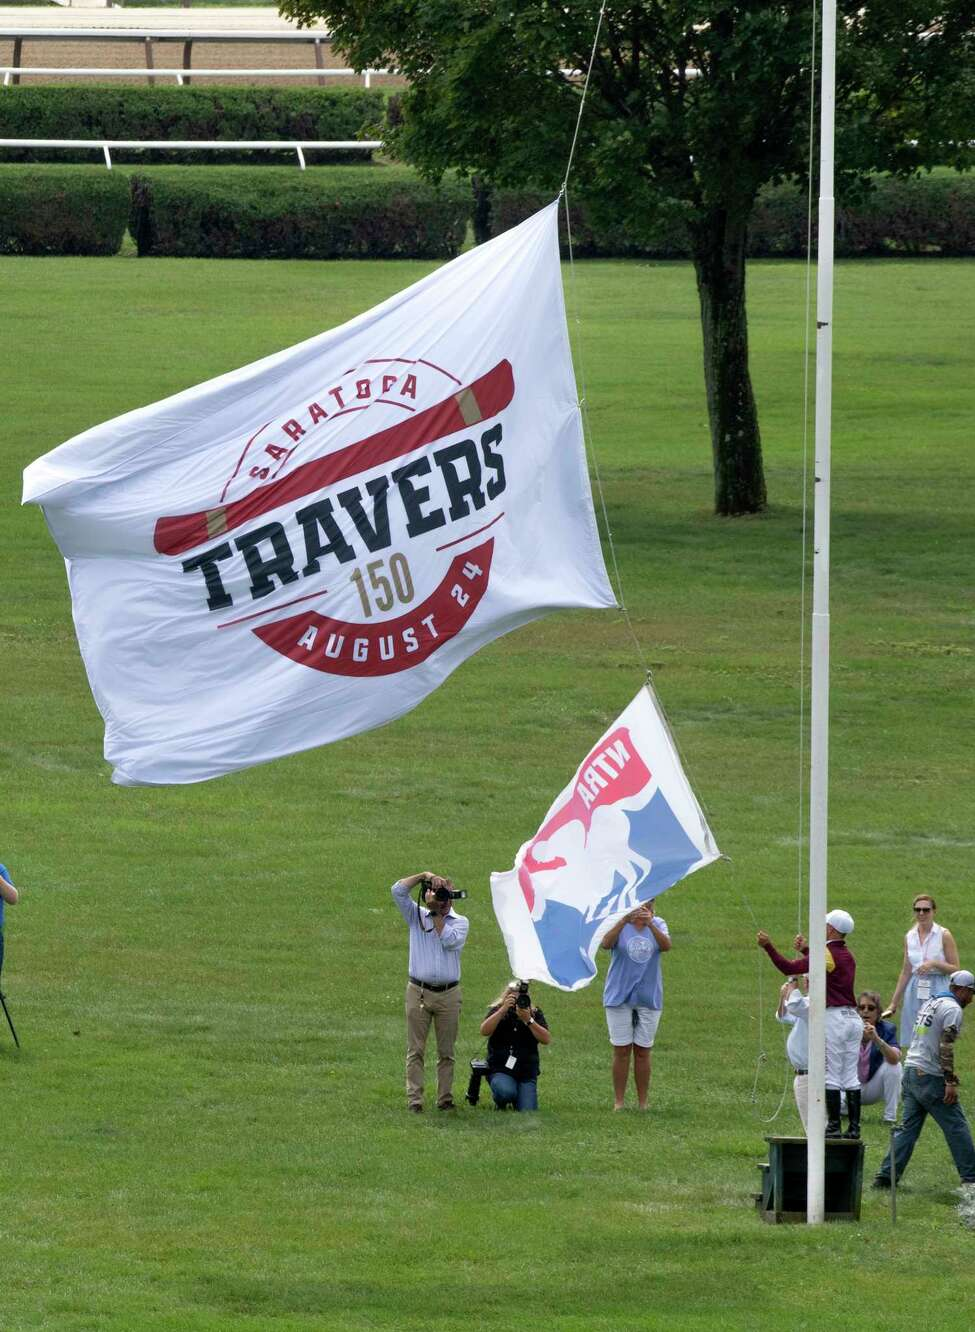 The Travers 150 flag goes up in the infield of the main track at the Saratoga Race Course Thursday Aug. 22, 2019 in Saratoga Springs, N.Y. the flag was hoisted up by last yearA?•s winning jockey Hall of FamerA?•s Javier Castellano and trainer Shug McGuaghey Photo special to the Times Union by Skip Dickstein